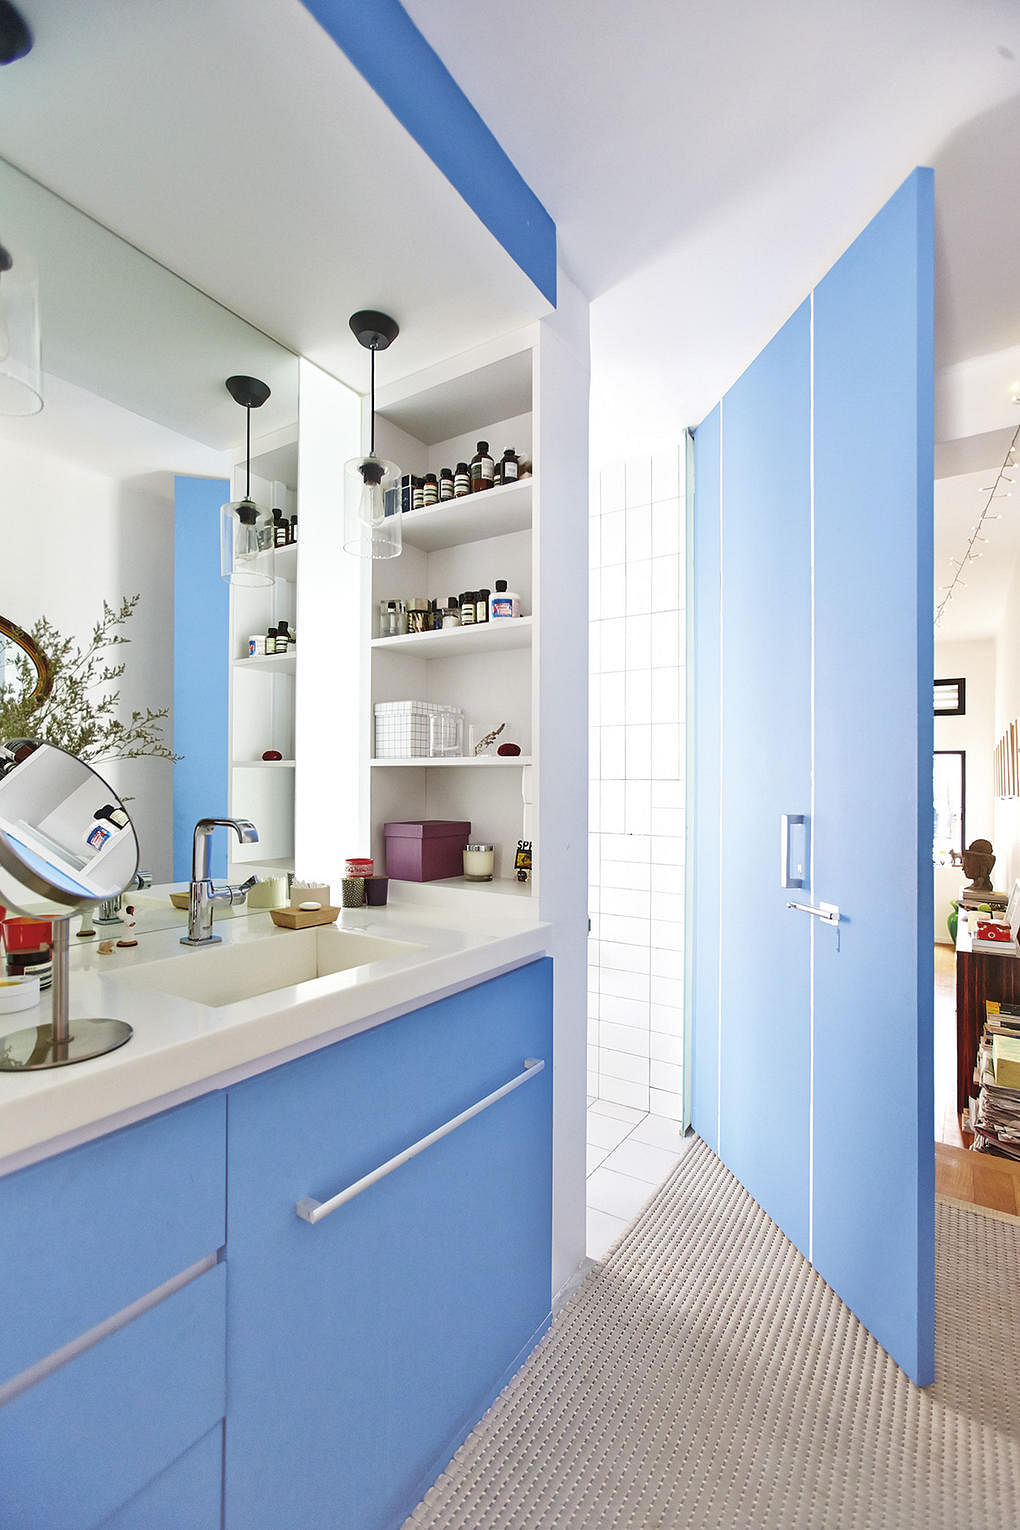 Bathroom design ideas: 5 great ways for open-concept spaces | Home ...